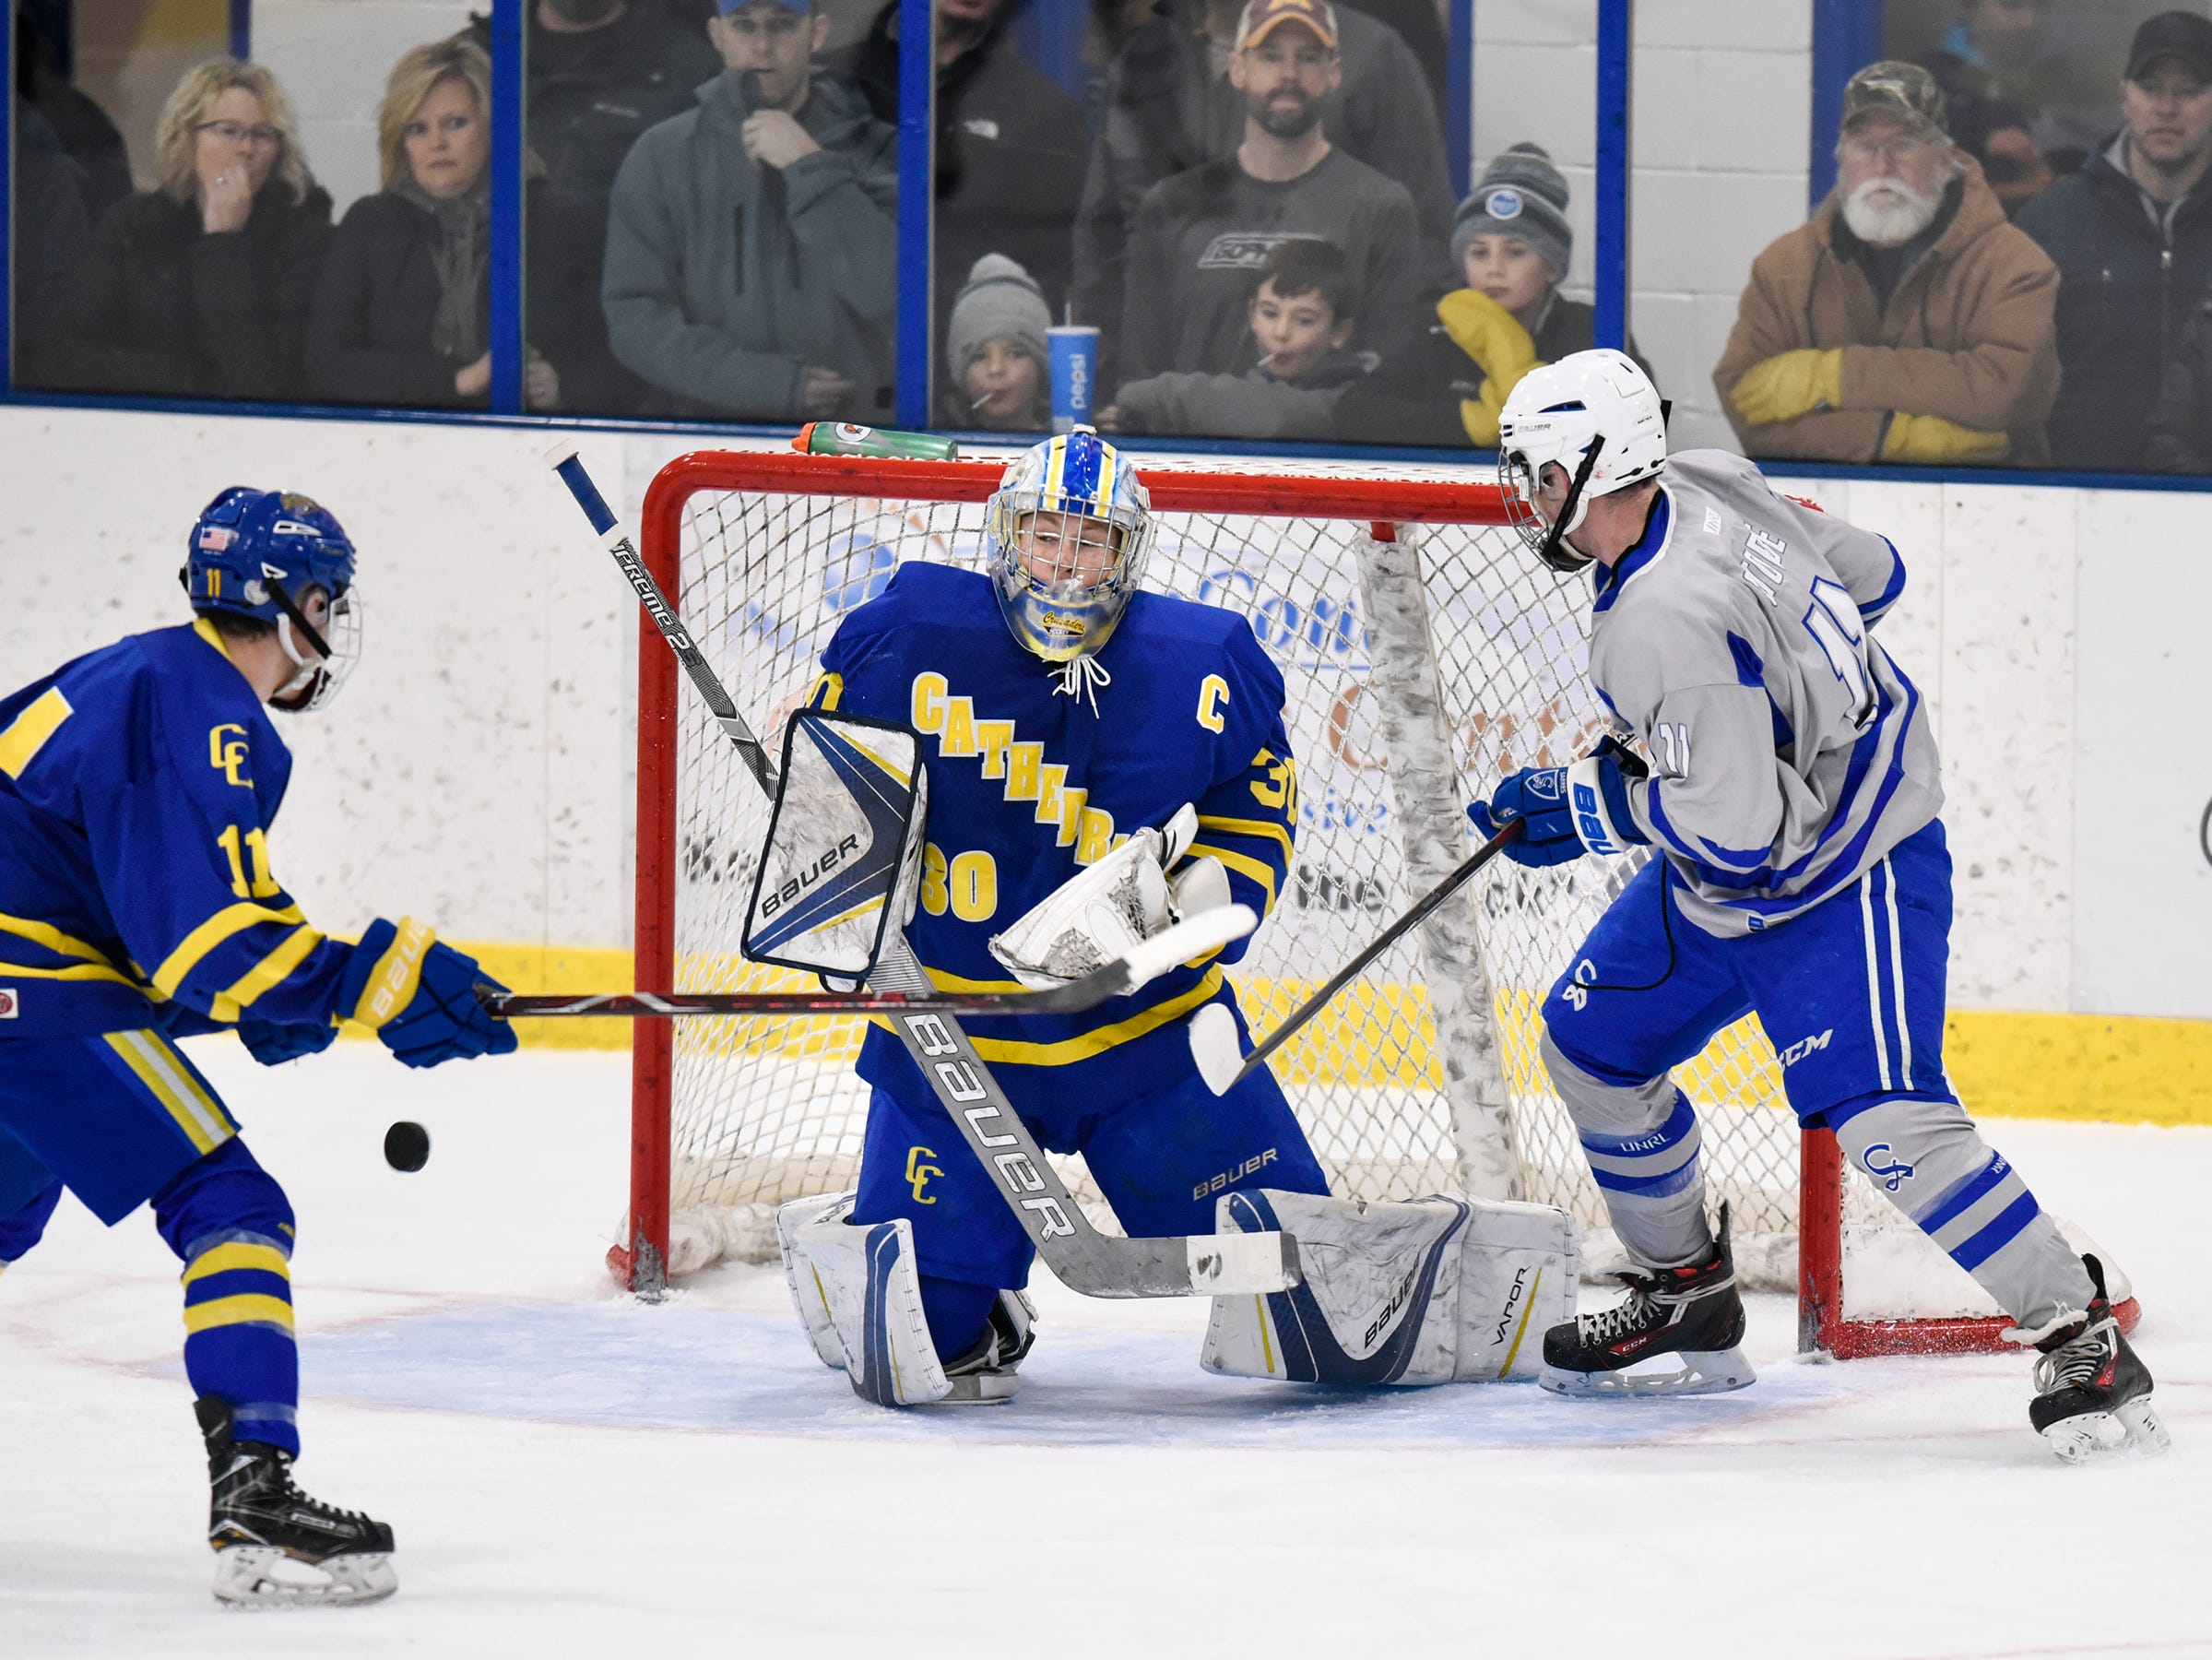 The puck bounces wide past Cathedral goaltender Noah Amundson during the Thursday, Jan. 10, game at Bernicks Arena in Sartell.